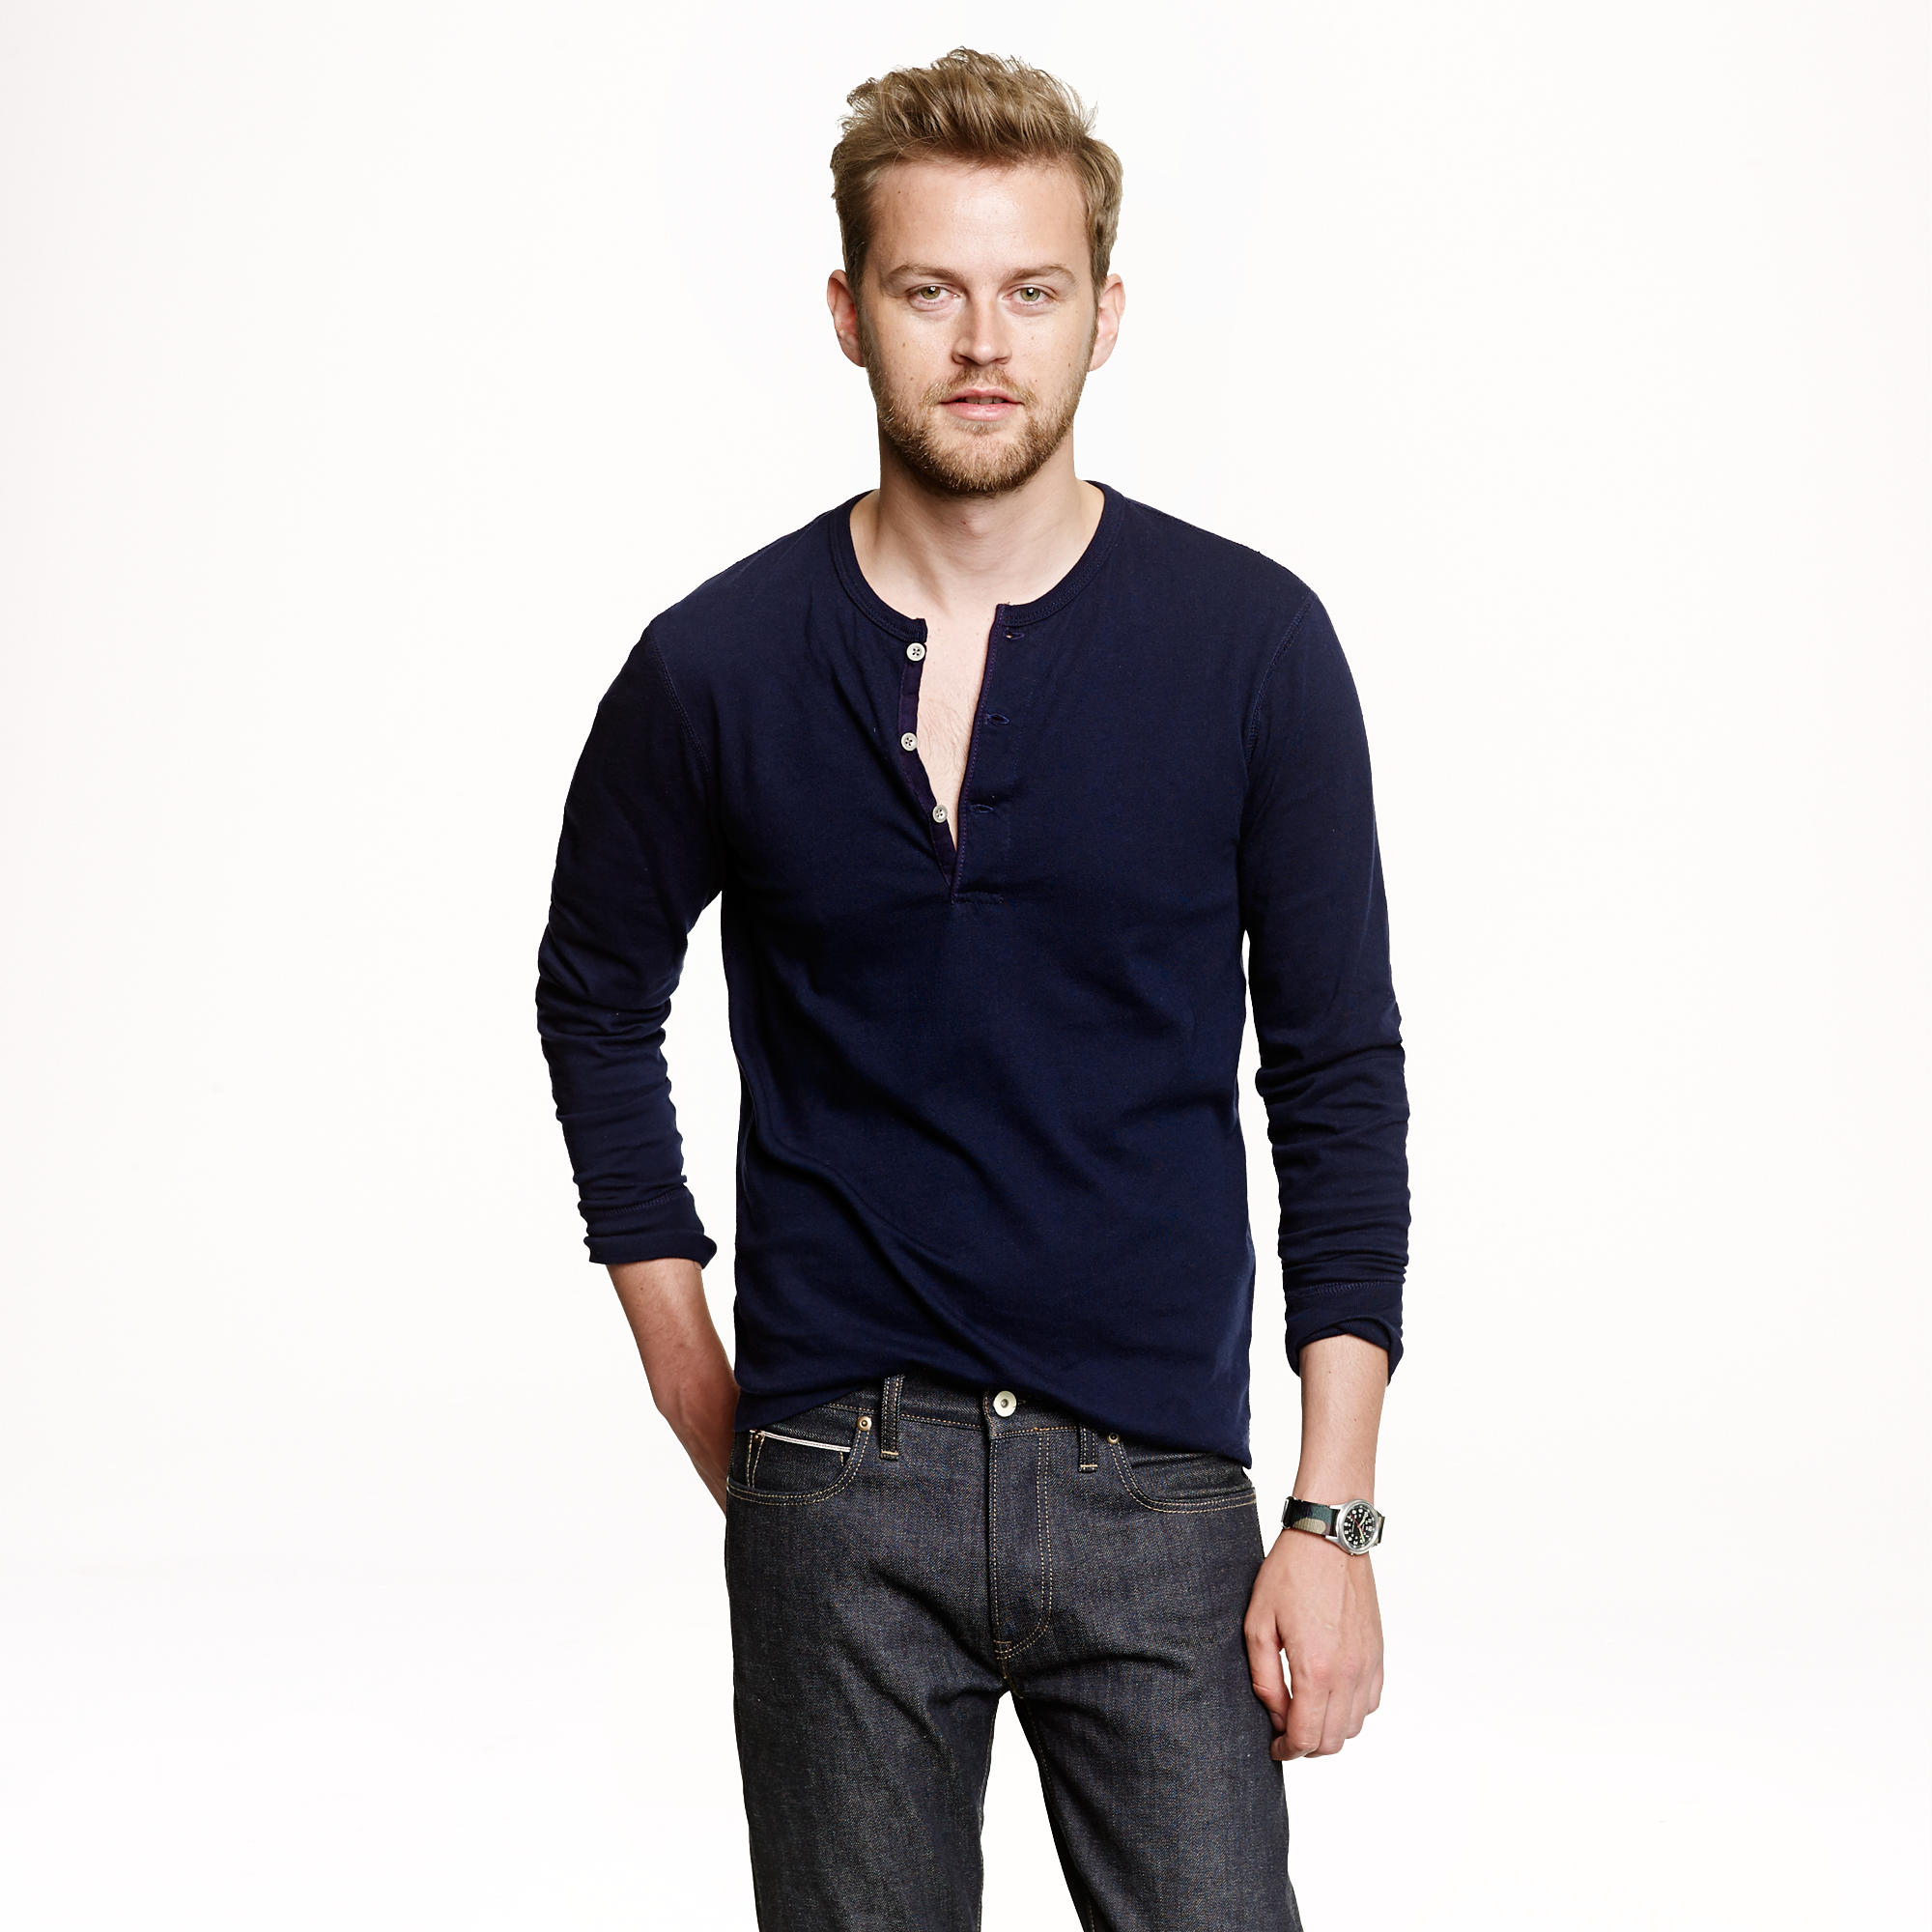 Men's henley shirts are a staple of versatile style with a rugged edge. For a henley shirt men can rely on for casual cool in any environment, shop Lucky Brand. Men's henley shirts are a staple of versatile style with a rugged edge. For a henley shirt men can rely on for casual cool in .